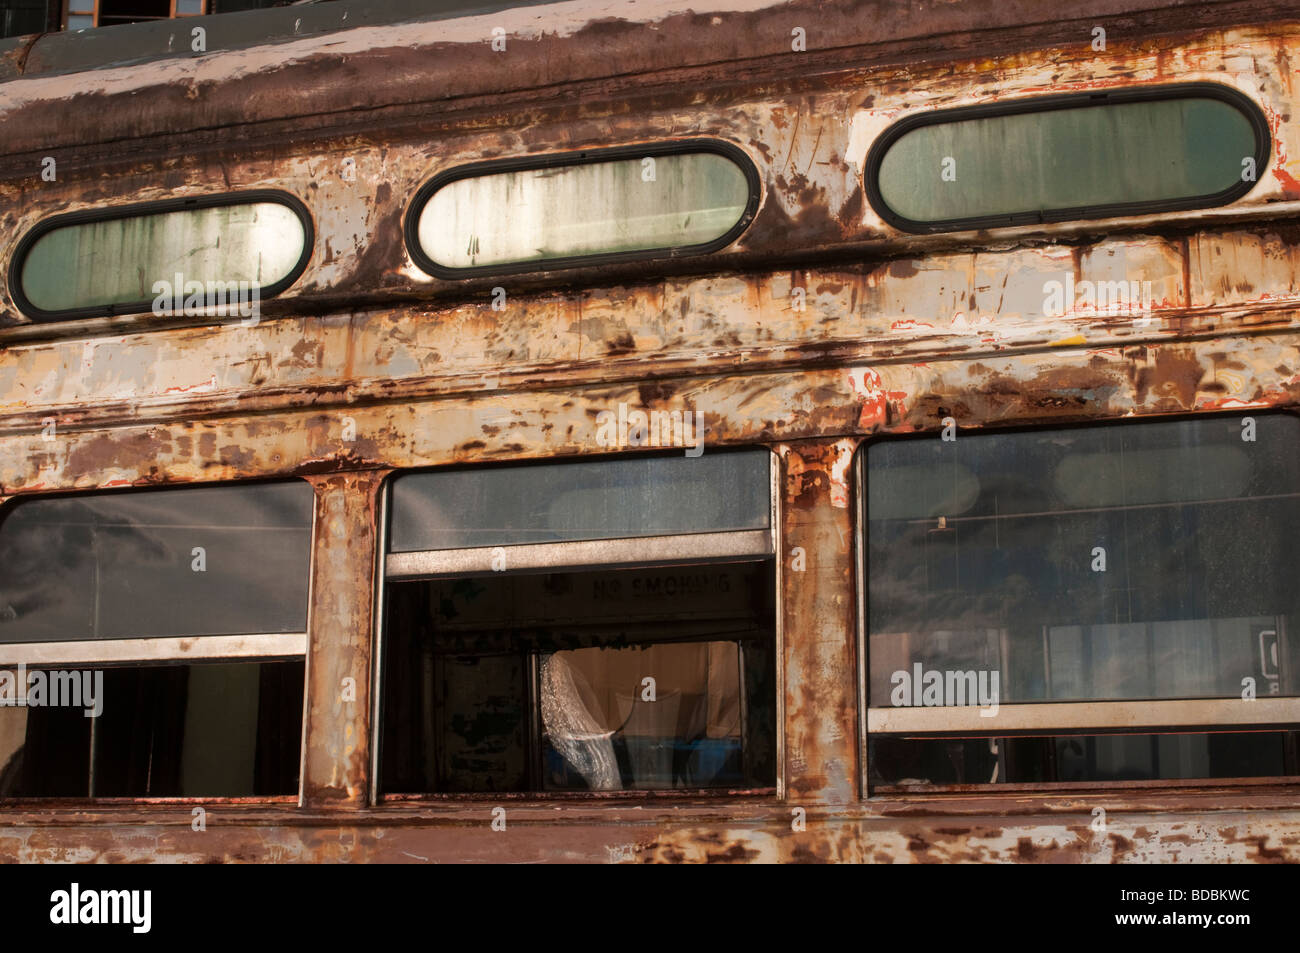 Old Red Hook Trolley - Stock Image